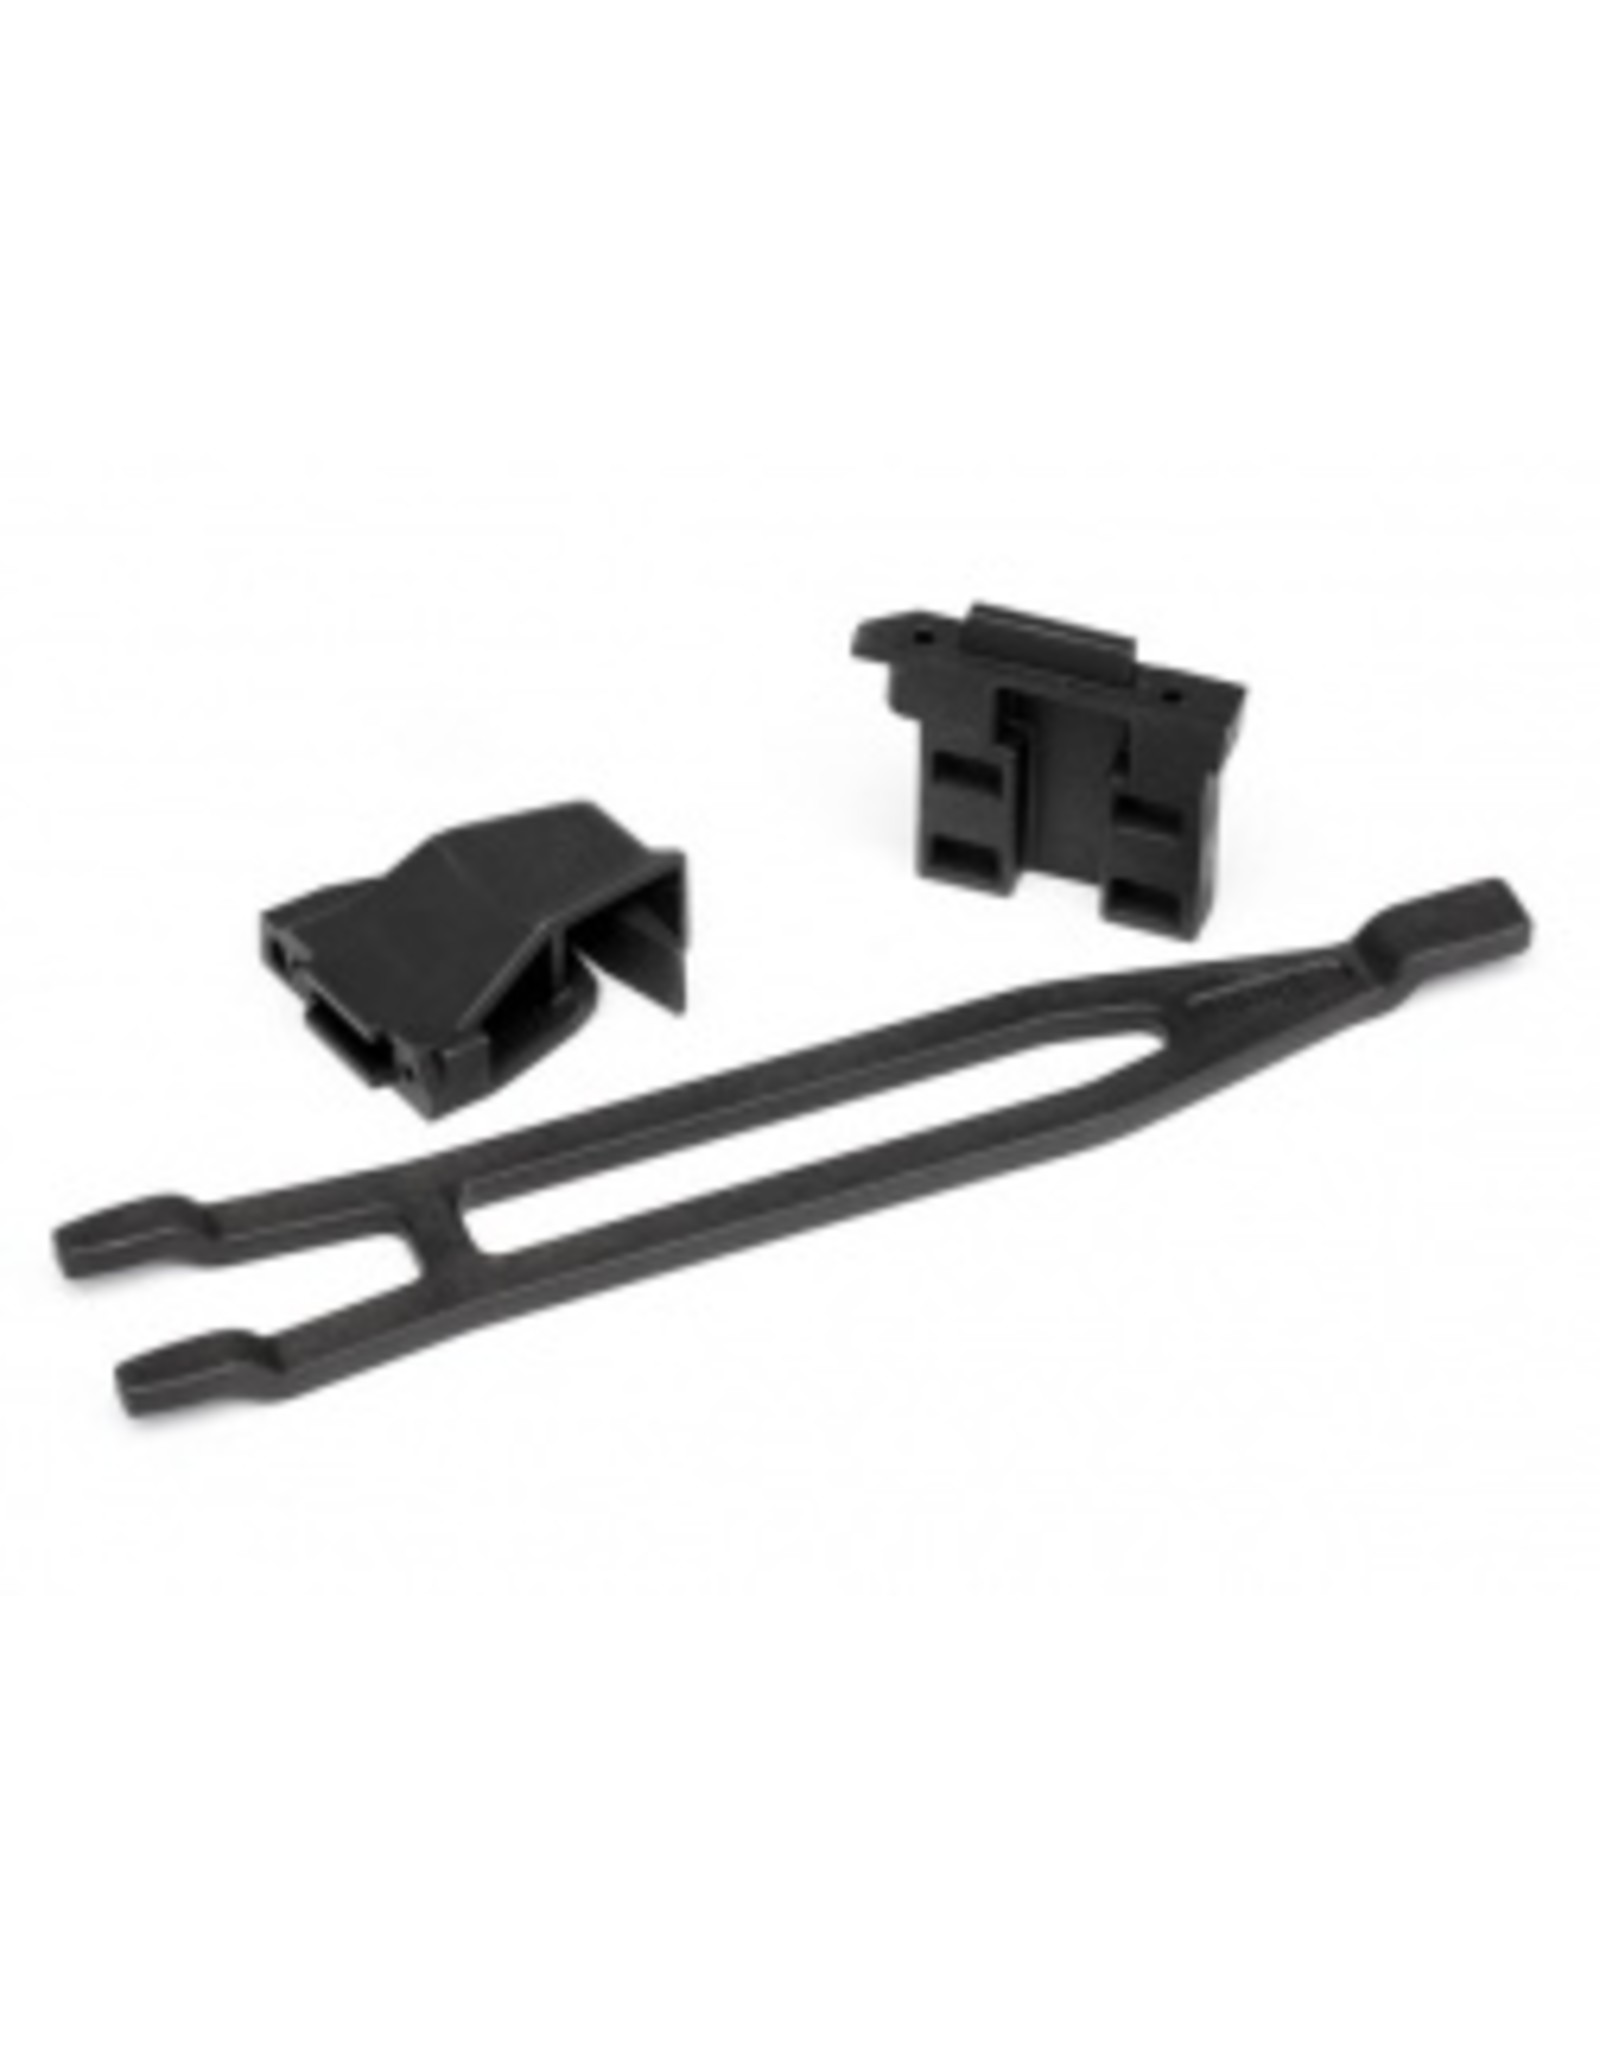 Traxxas Battery hold-downs, tall (2) (allows for installation of taller, multi-cell batteries) - Slash 4X4 / Rally (7426X)